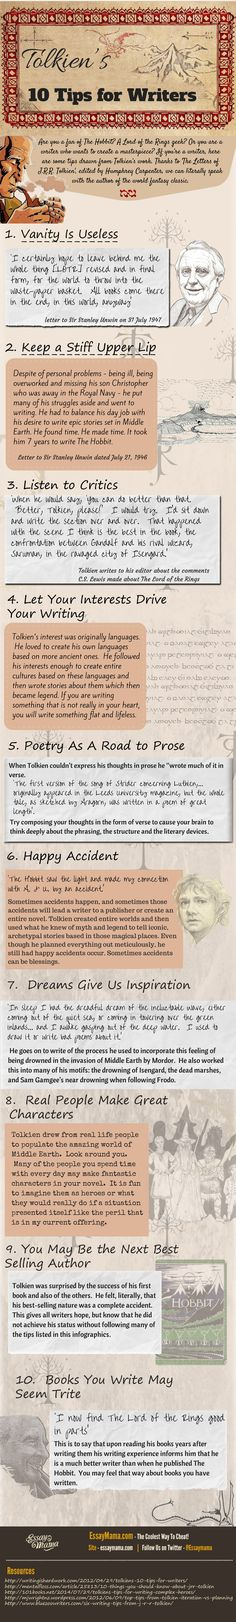 J. R. R. Tolkien's 10 Tips For Writers: INFOGRAPHIC